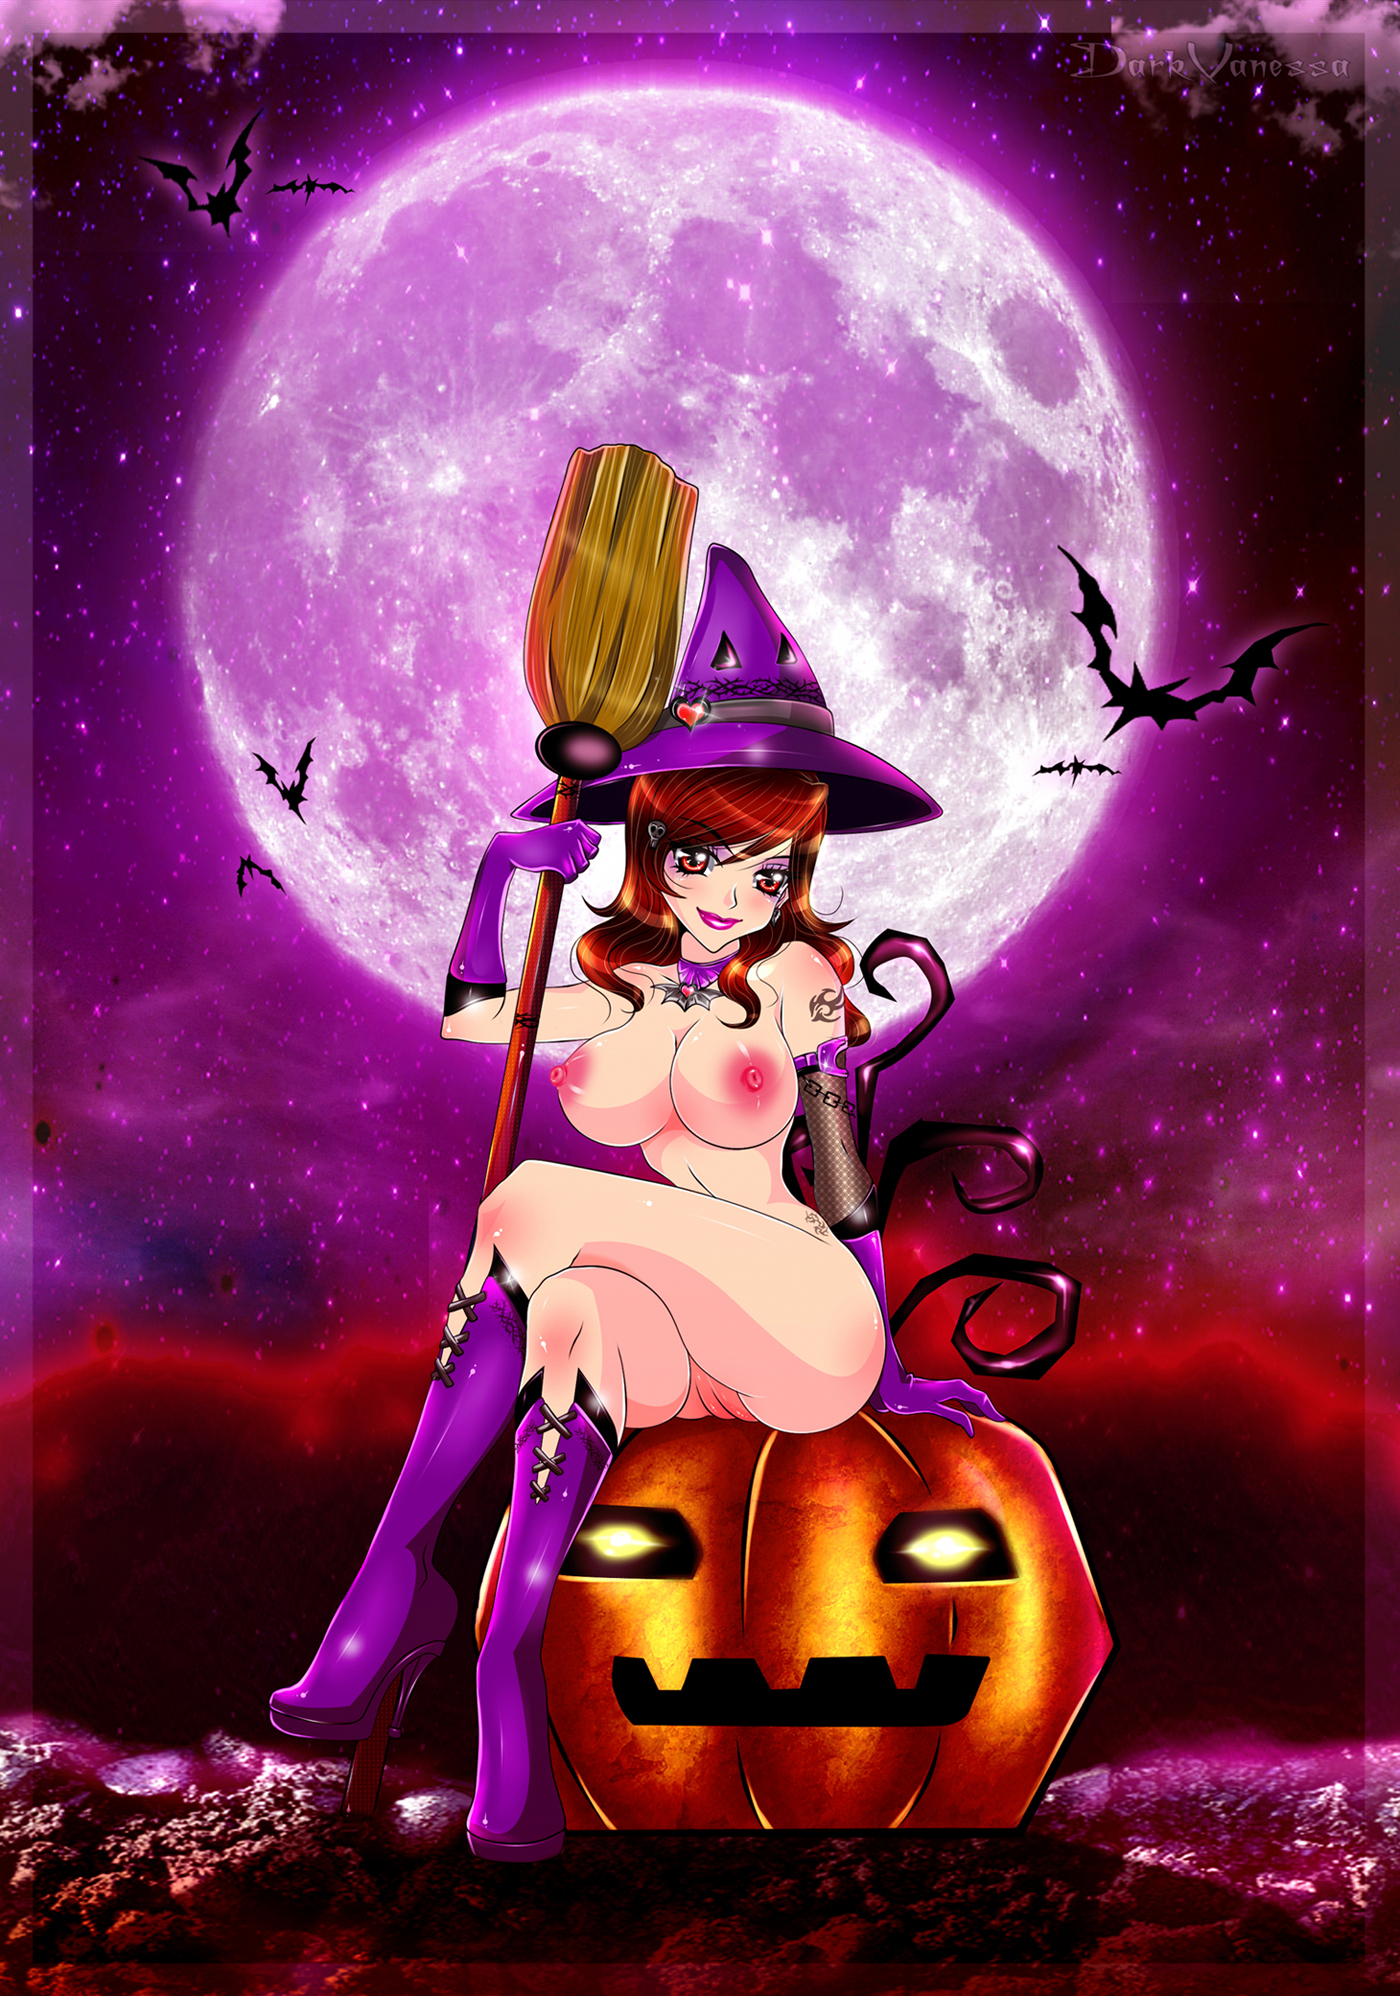 Beatufiul naked witch sits on a pumpkin under a full moon